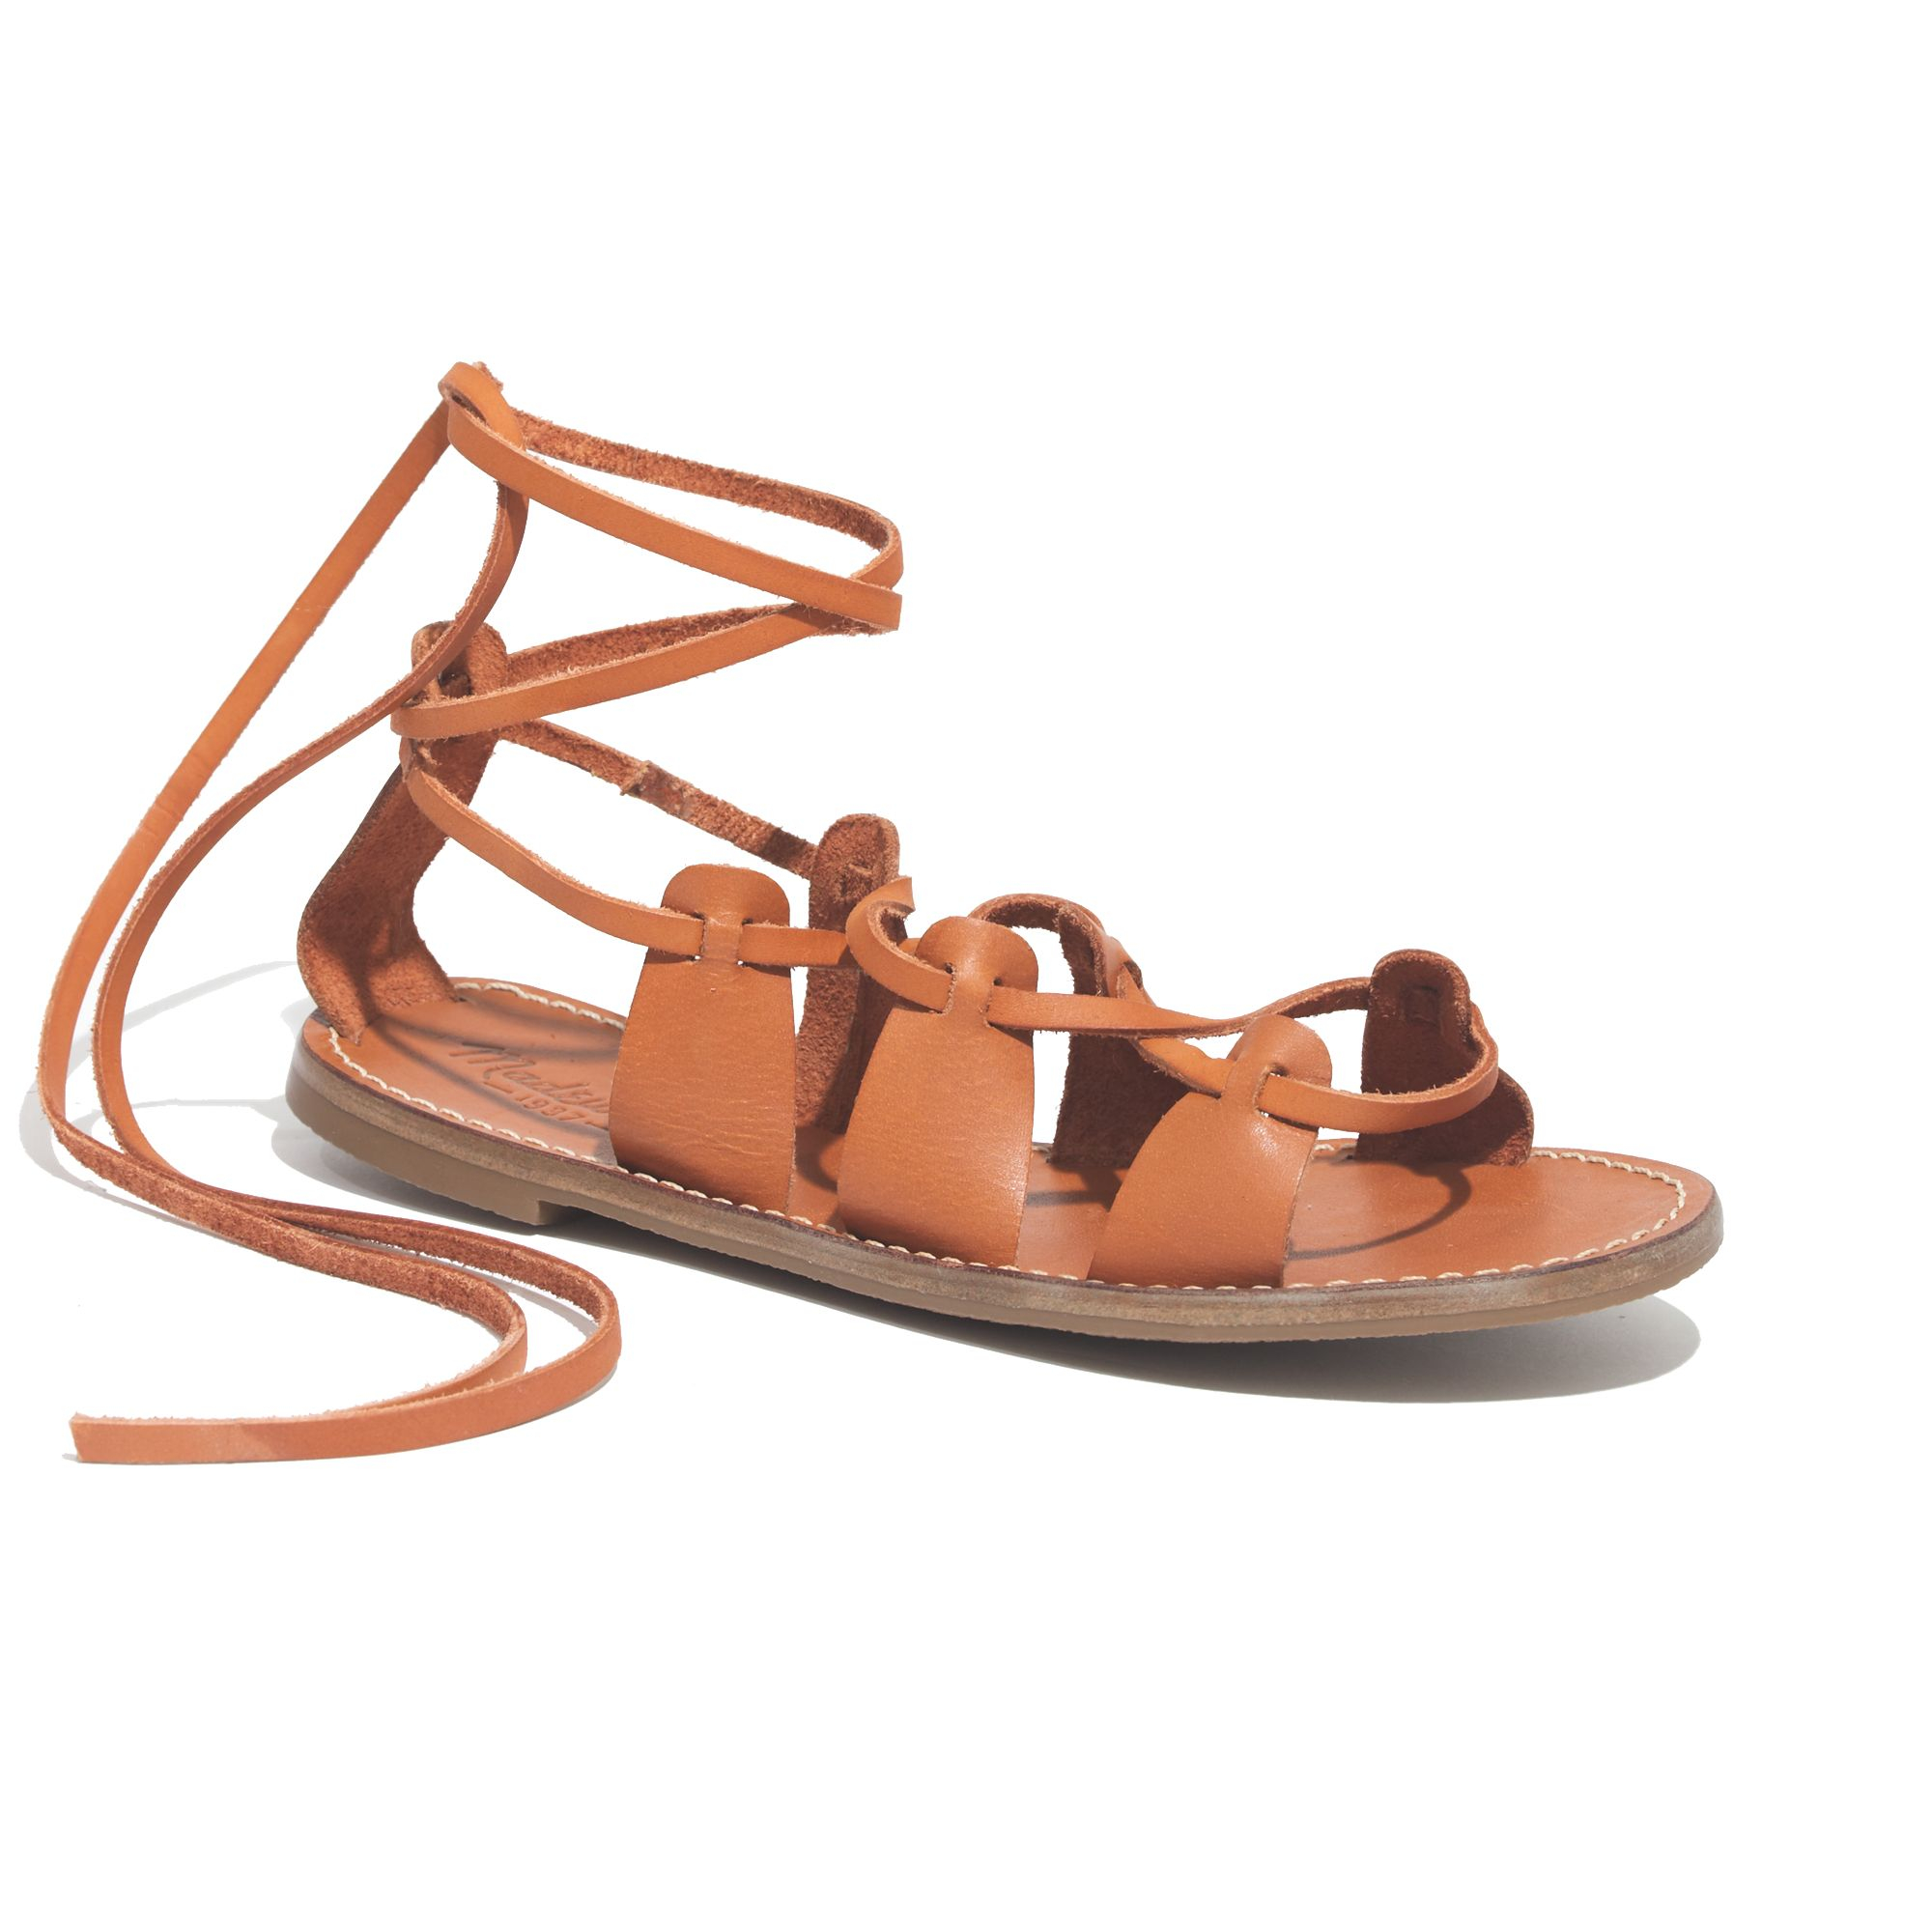 5d131d3f38a Lyst - Madewell The Gladiator Sightseer Sandal in Brown